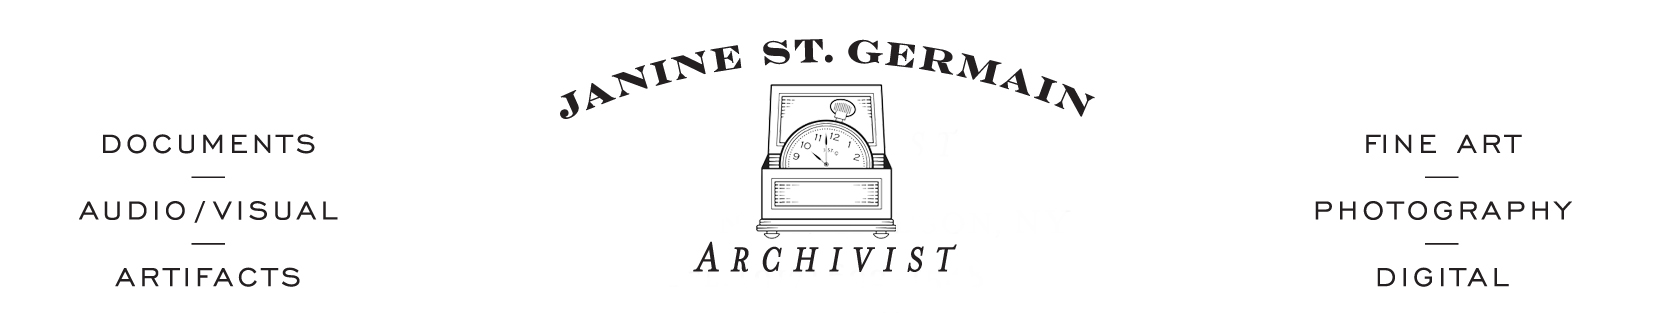 Janine St. Germain Archivist